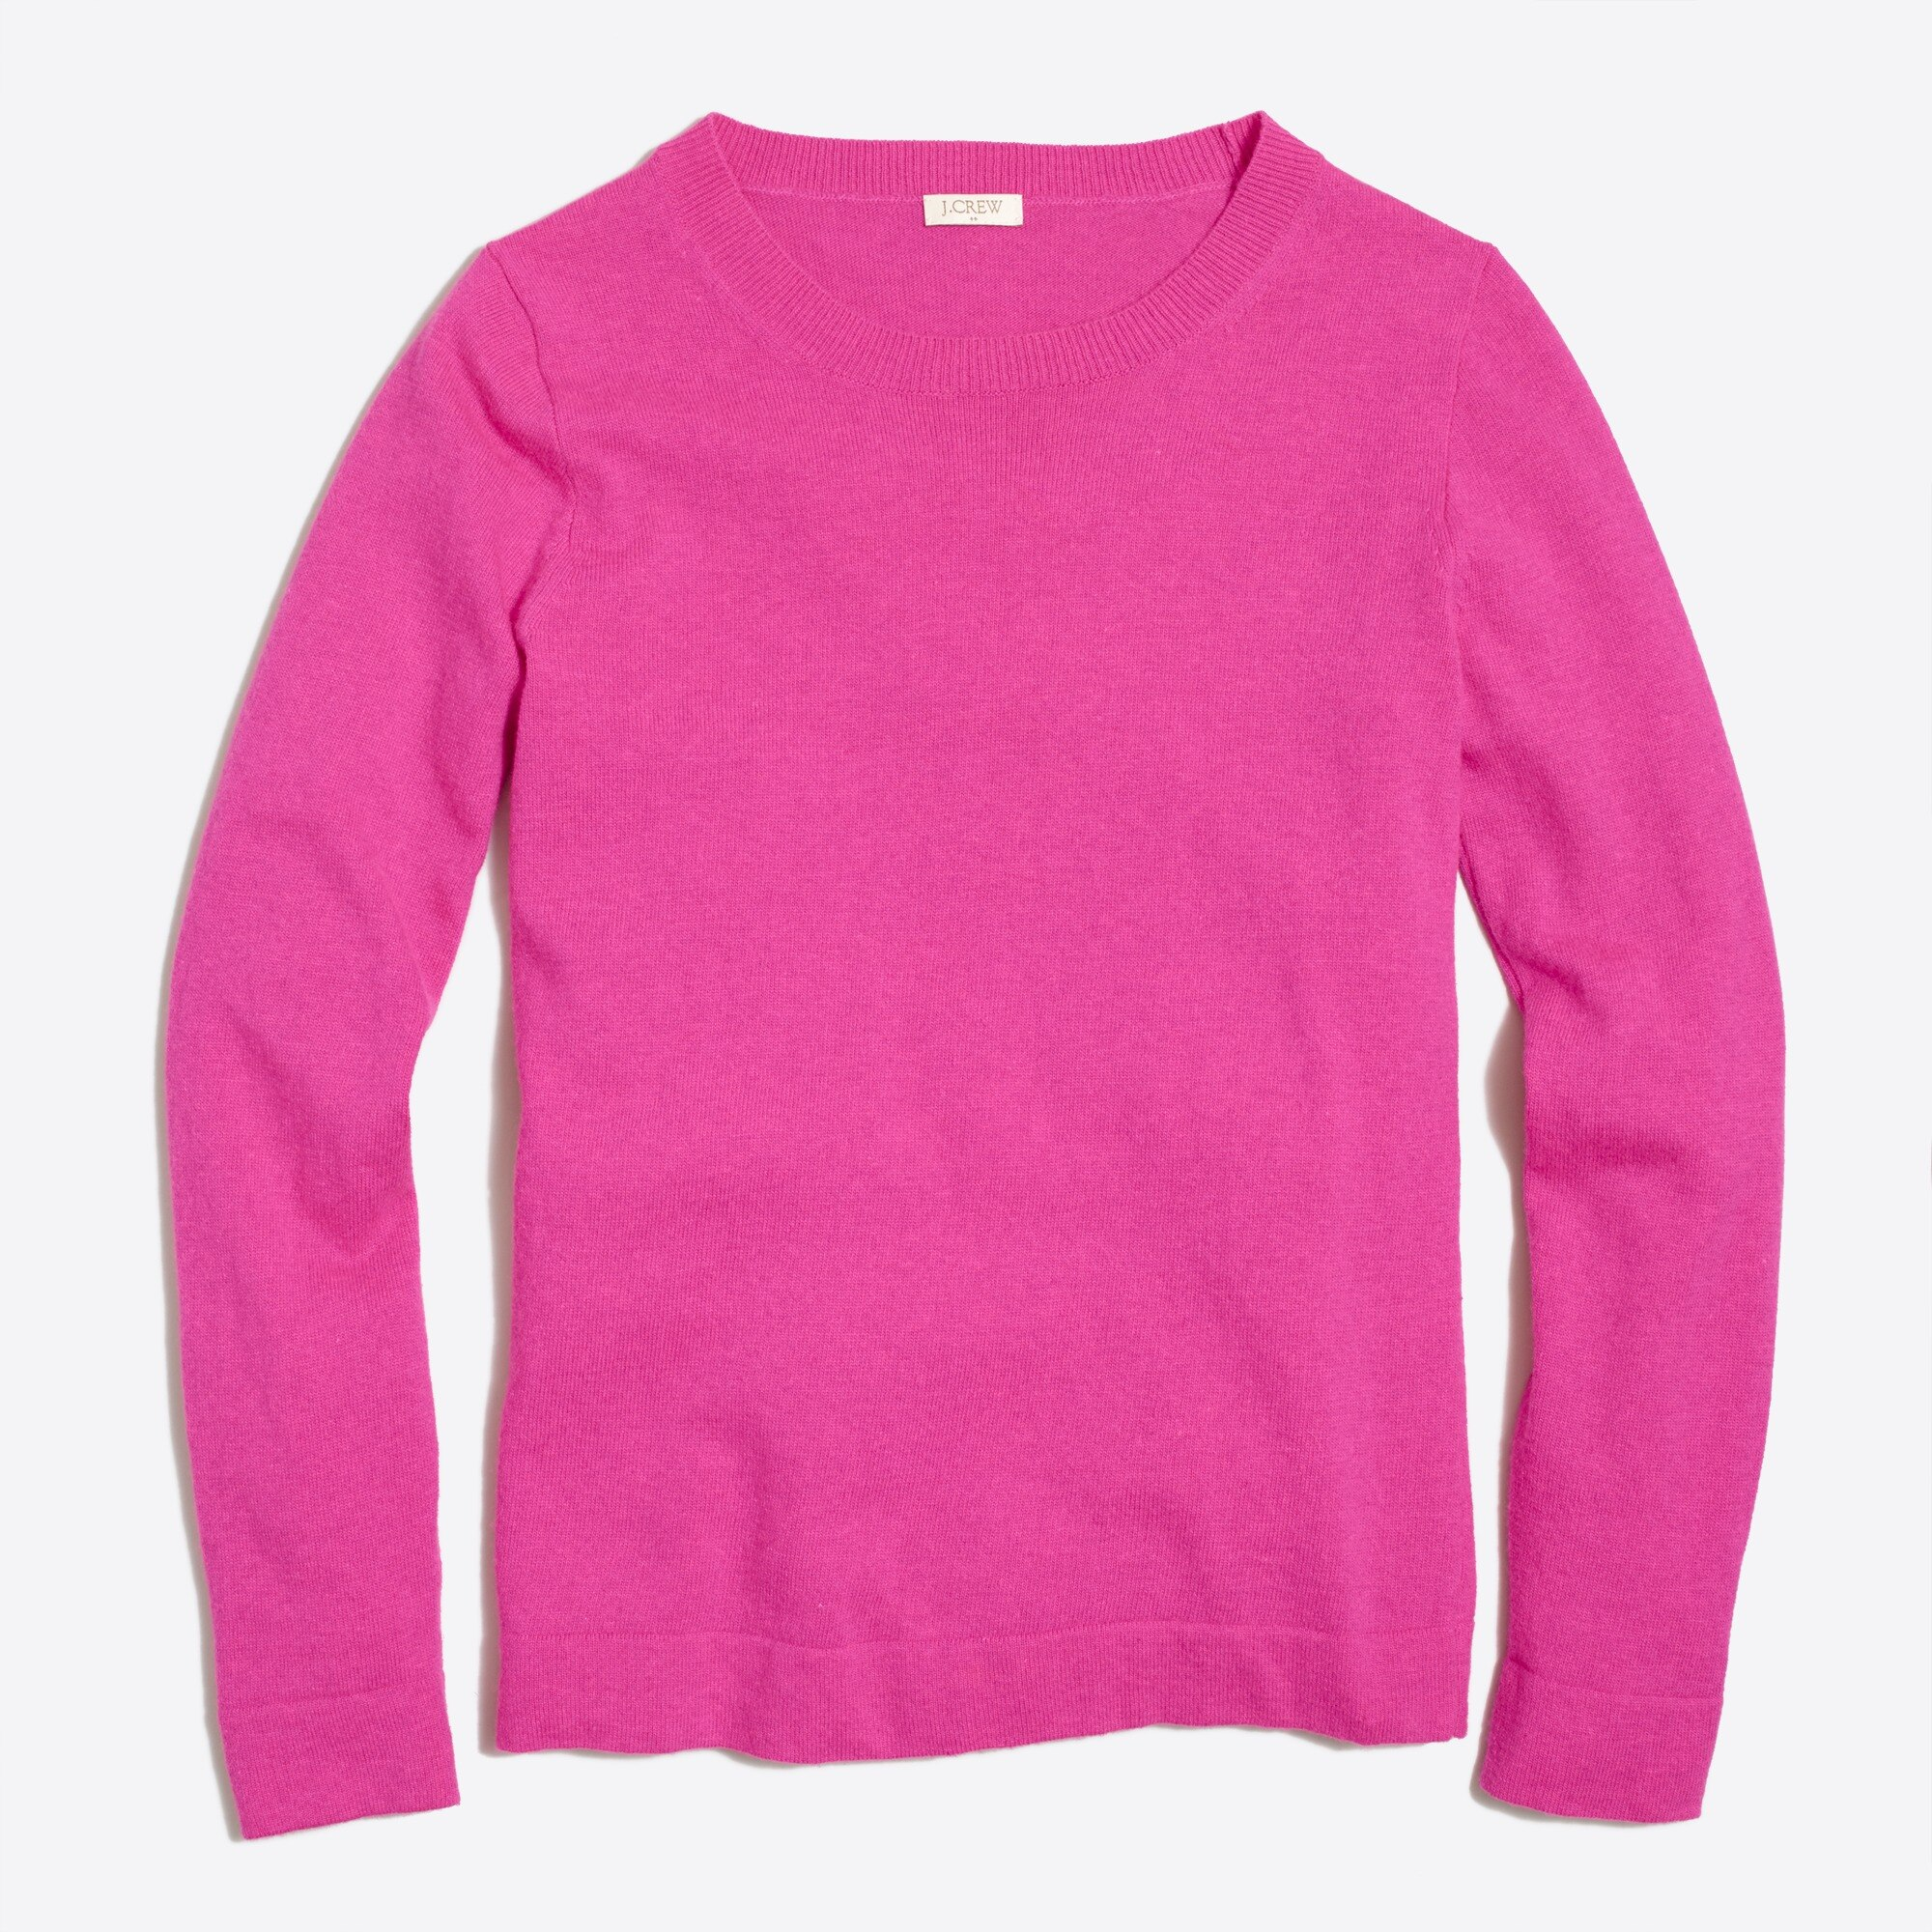 Image 2 for Cotton-wool Teddie sweater